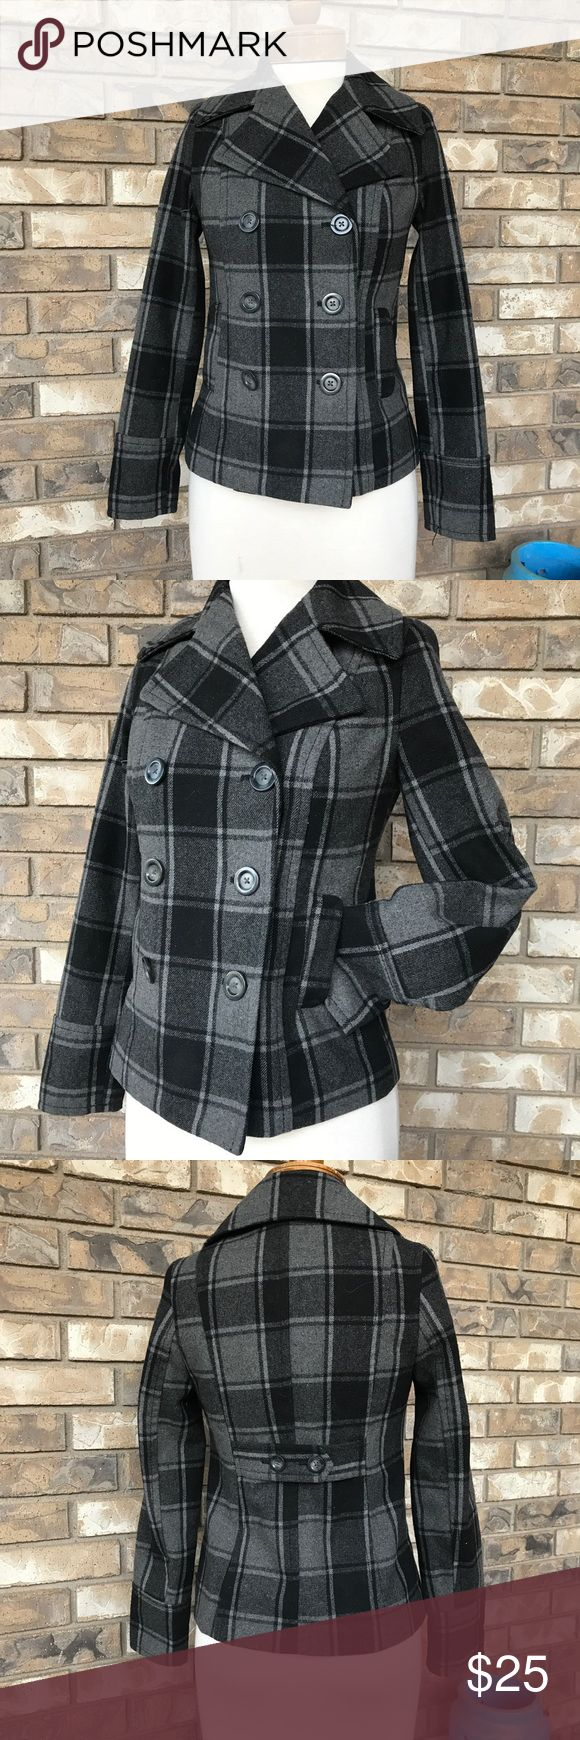 Old Navy Wool Pea Coat XS Old Navy Pea Coat with wool content.  Super warm.  Completely lined.  Grey and black plaid.  Pockets.  Tailored back.  Fits 0-5 dress size.  Excellent condition Old Navy Jackets & Coats Pea Coats